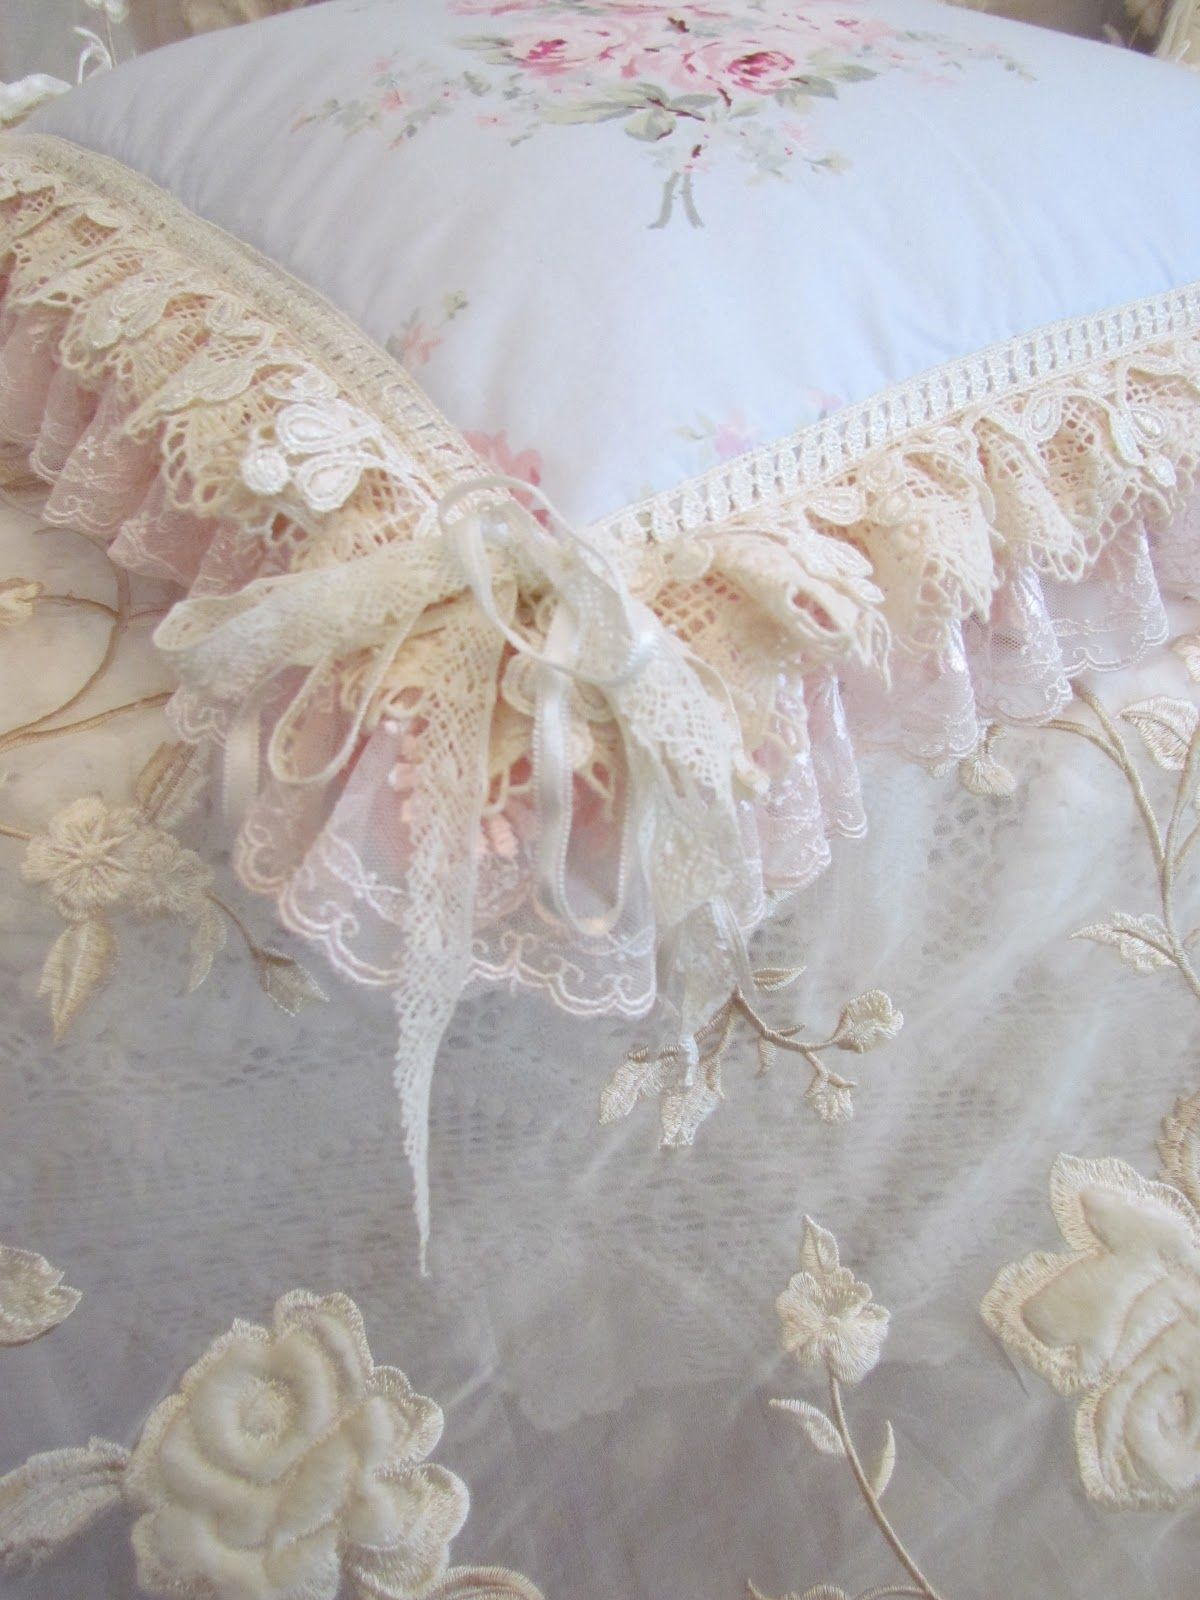 Vintage lace pillow. #shabby chic Cushions Pinterest Vintage lace, Pillows and Shabby